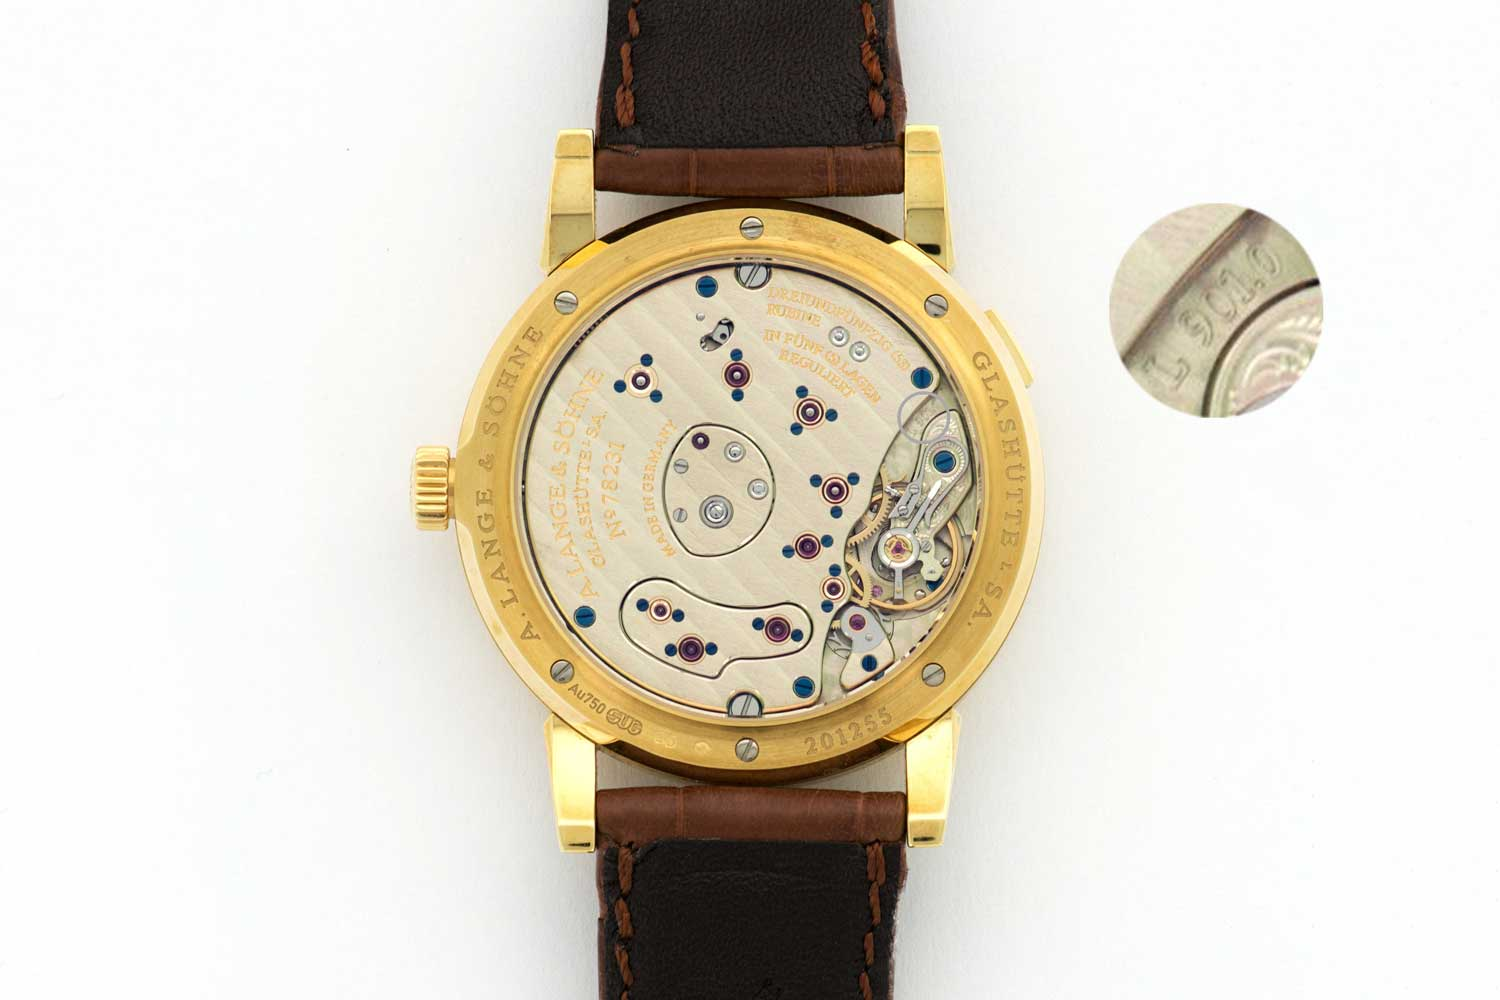 The movement within the ref. 101.021 Lange 1 was the L901.0 (Image: thekeystone.com)